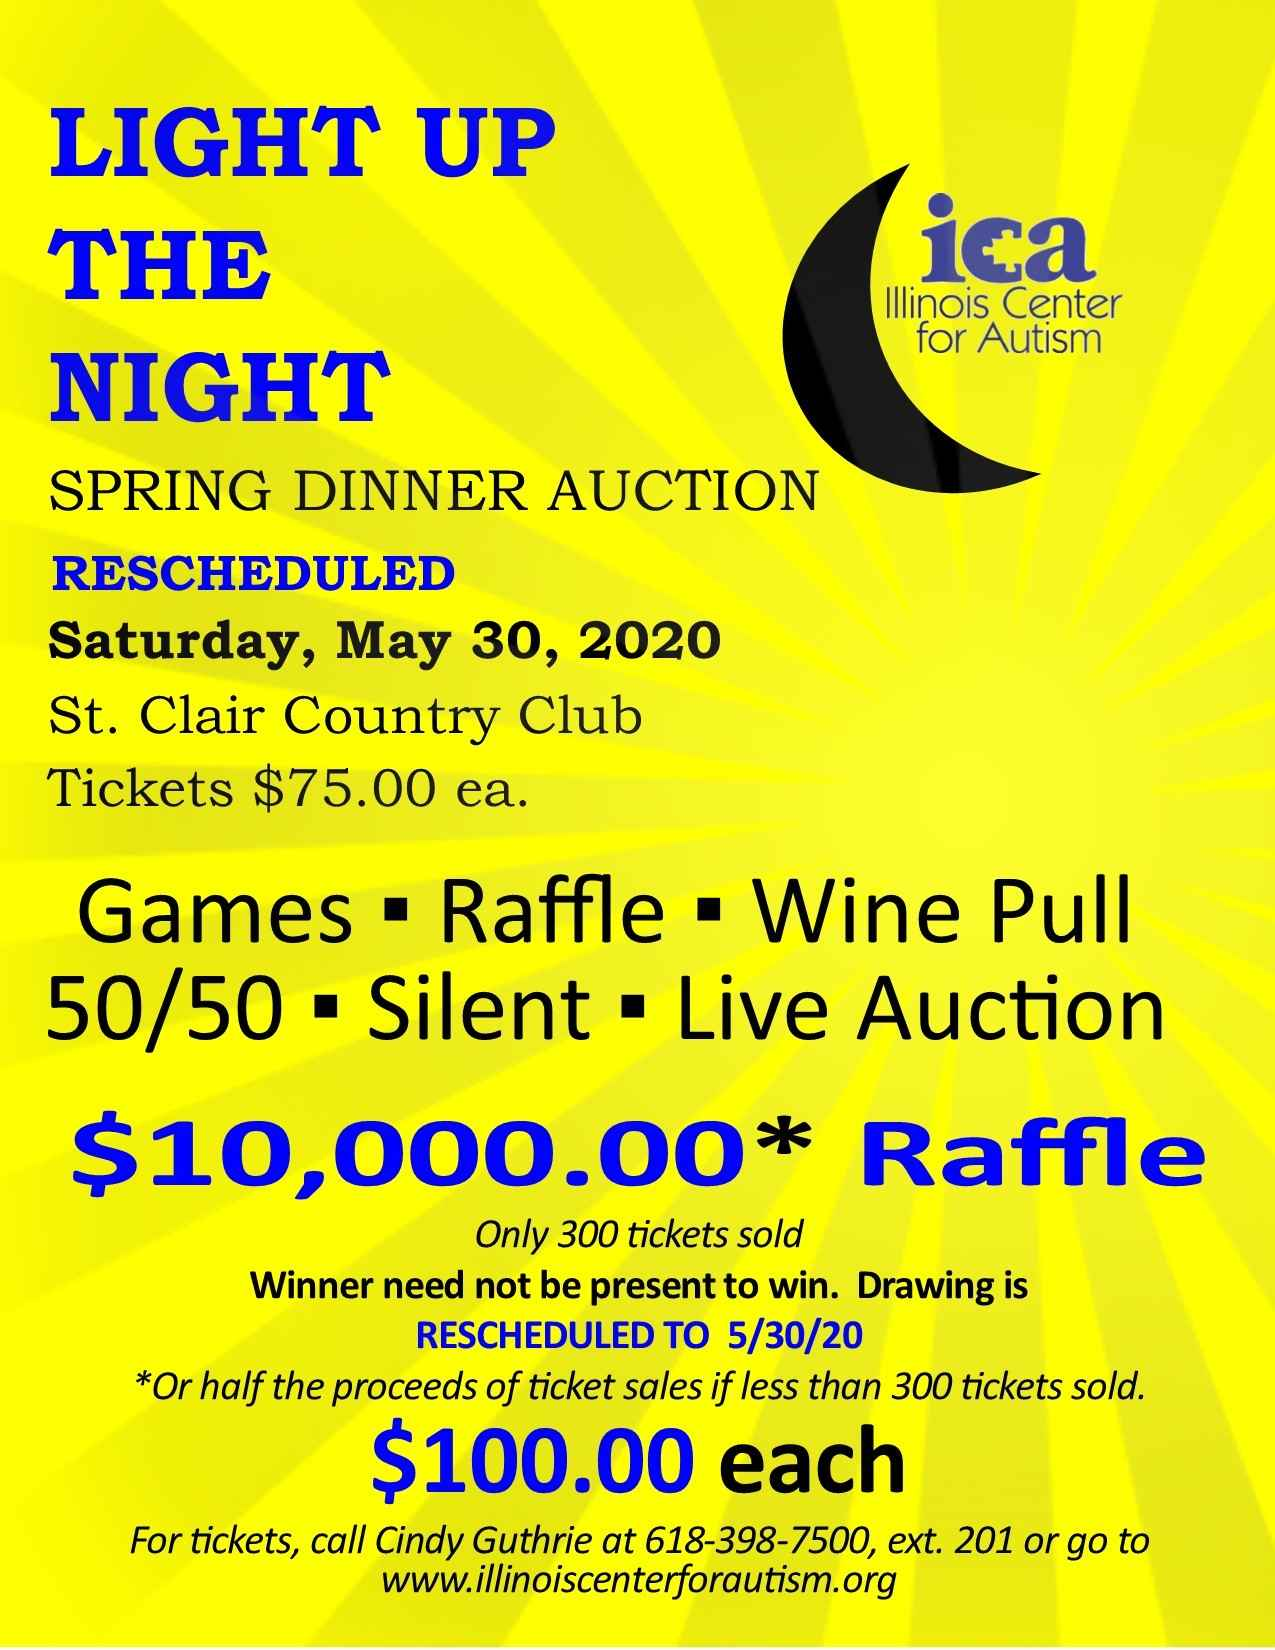 2020 Light Up The Night Spring Dinner Auction image